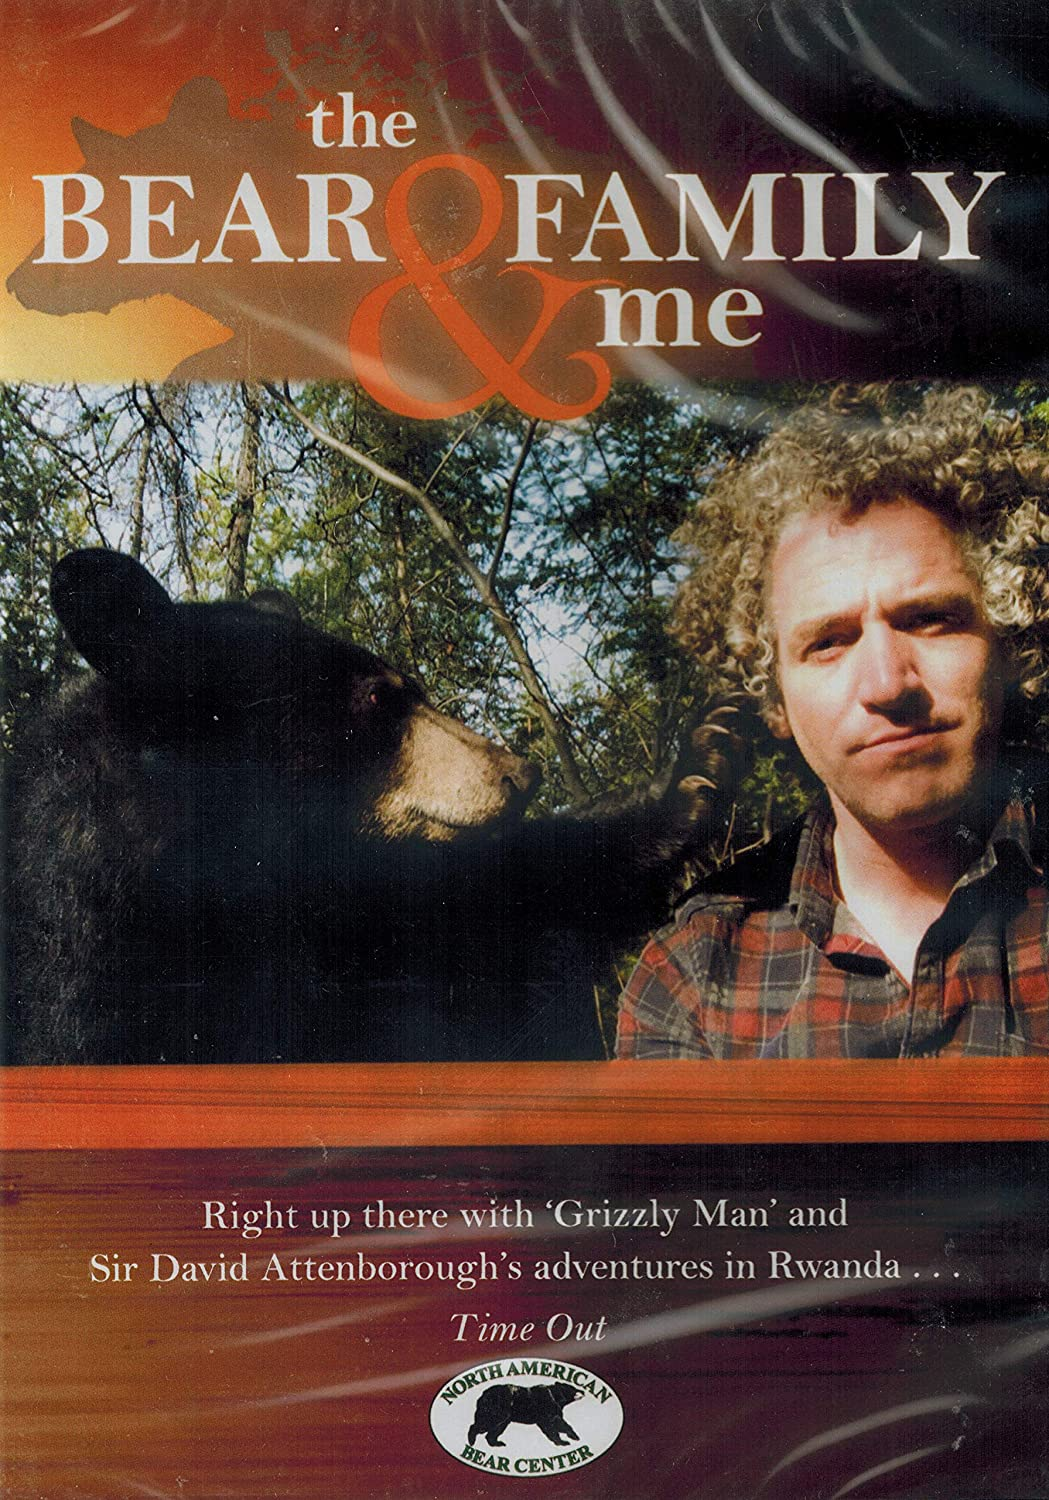 Super special price The Bear Weekly update Family Me